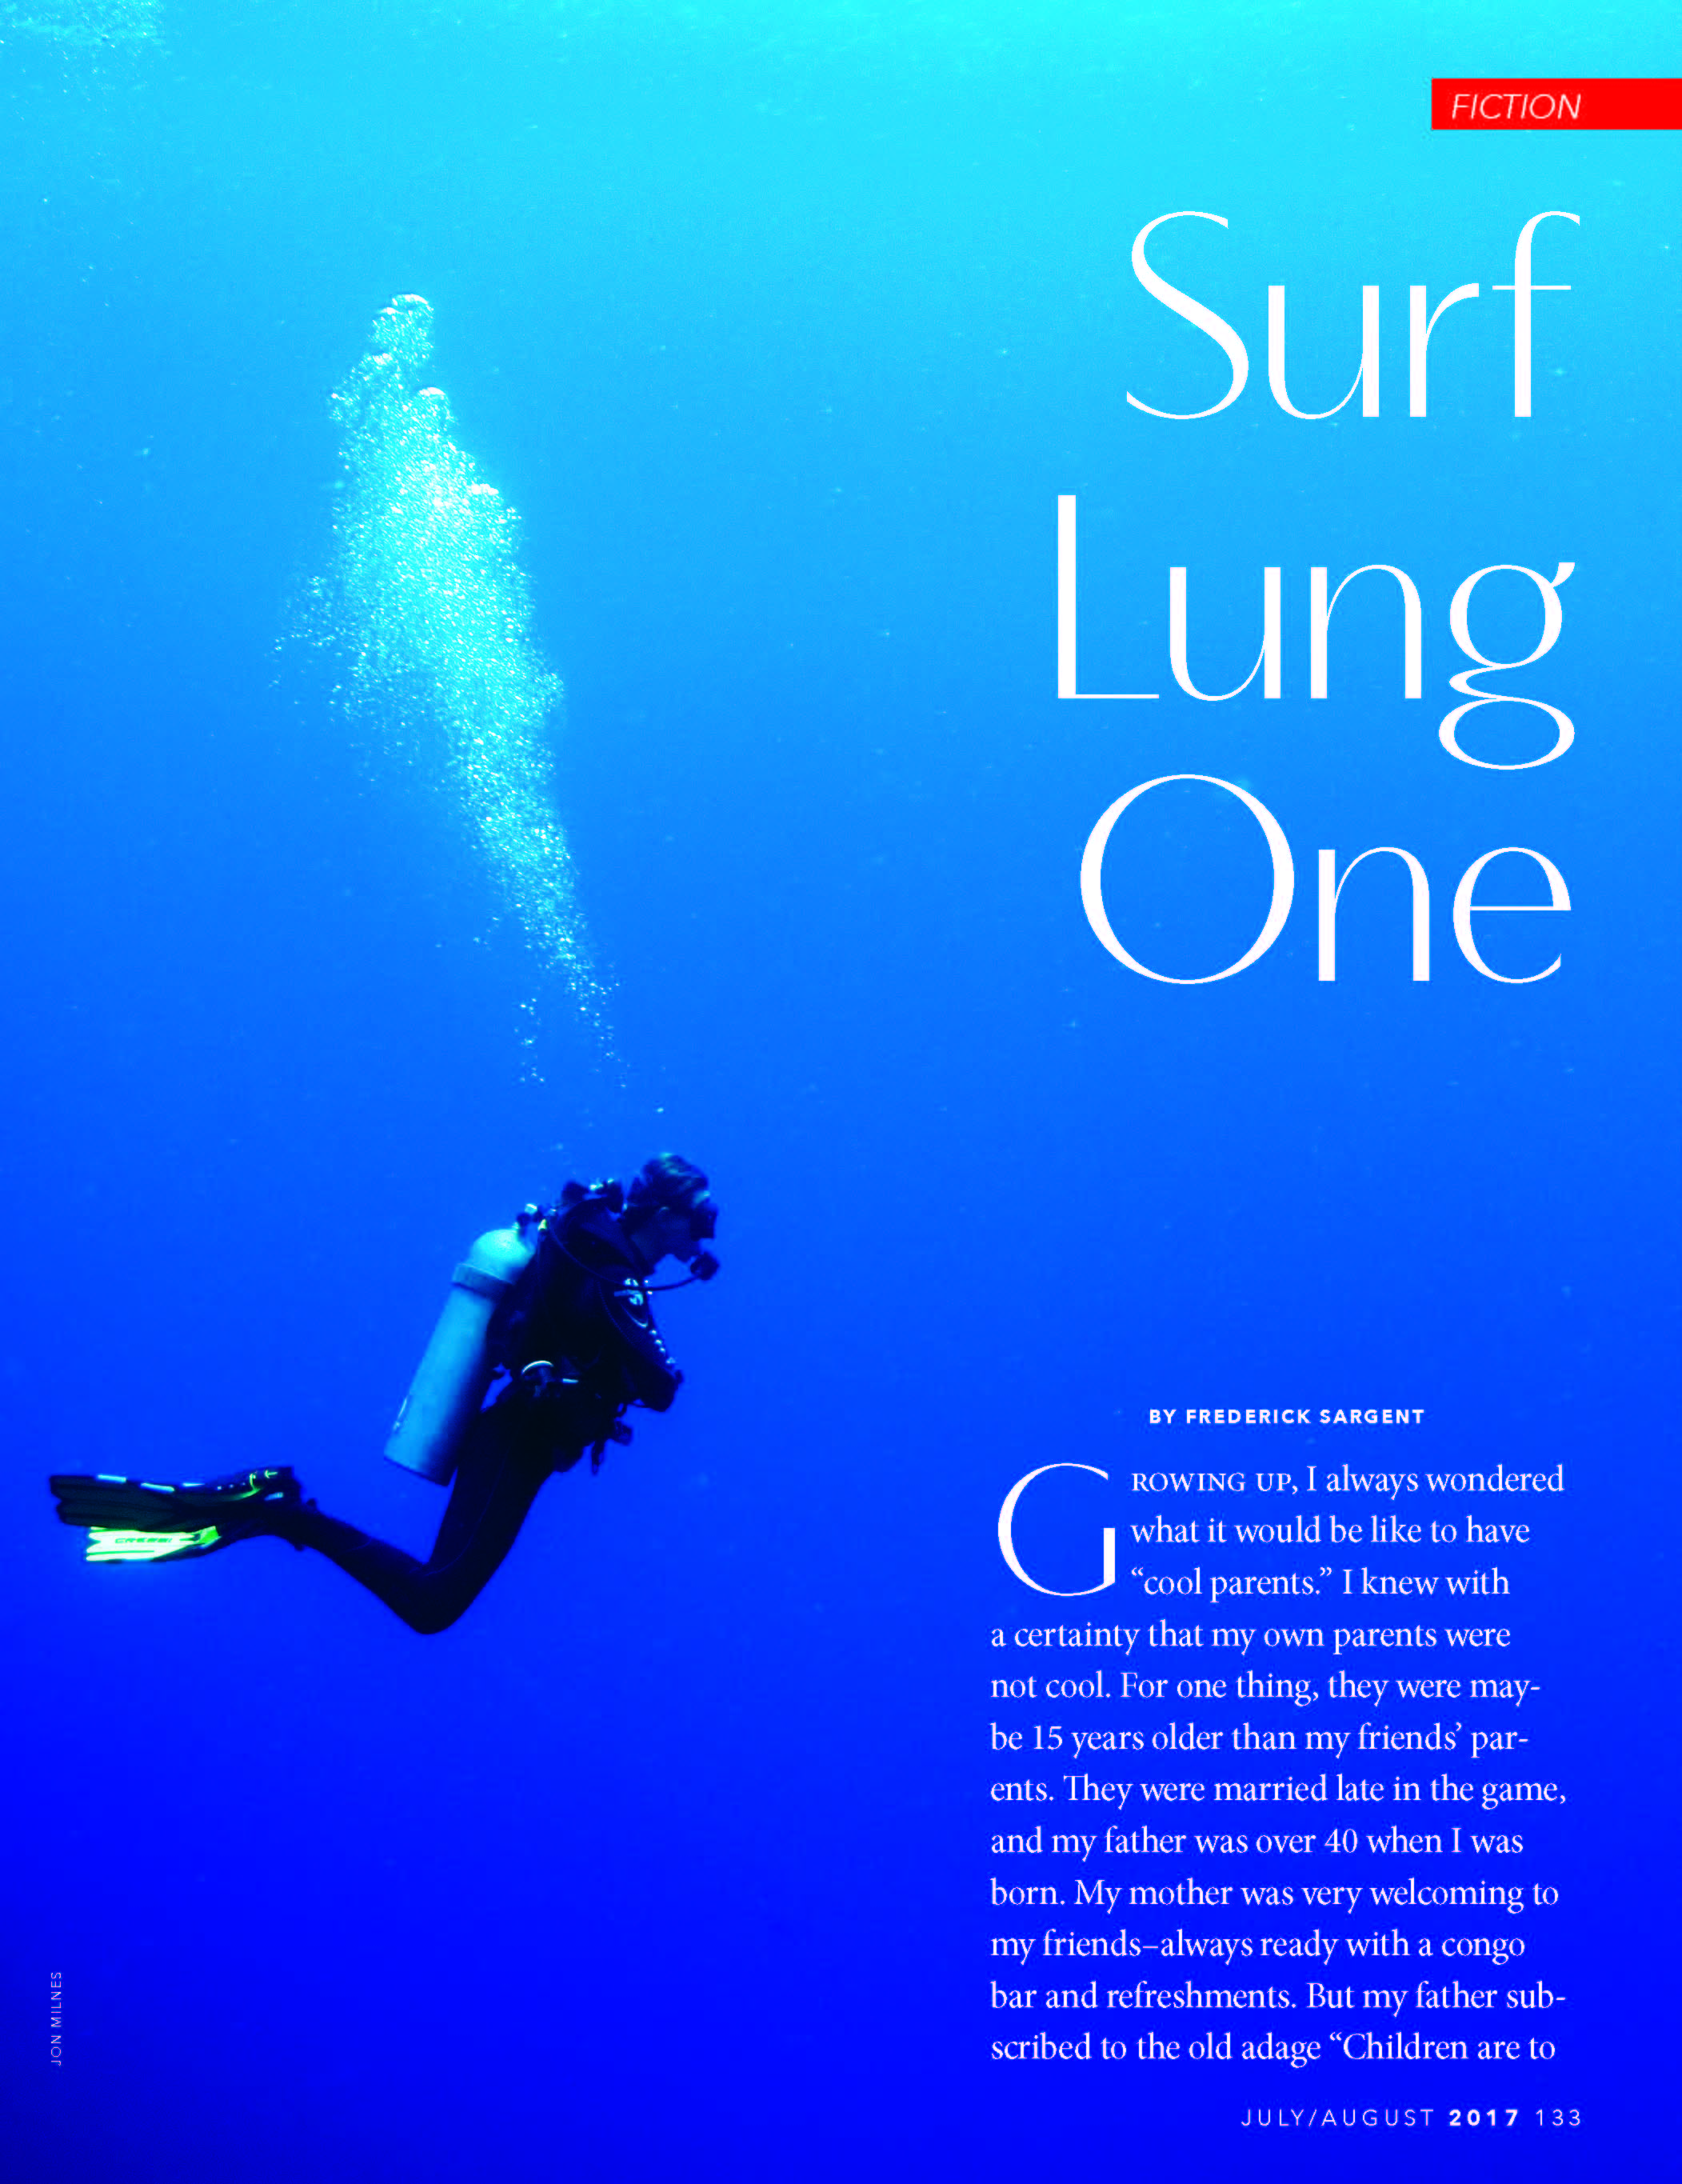 Surf Lung One - July/August 2017 Fiction